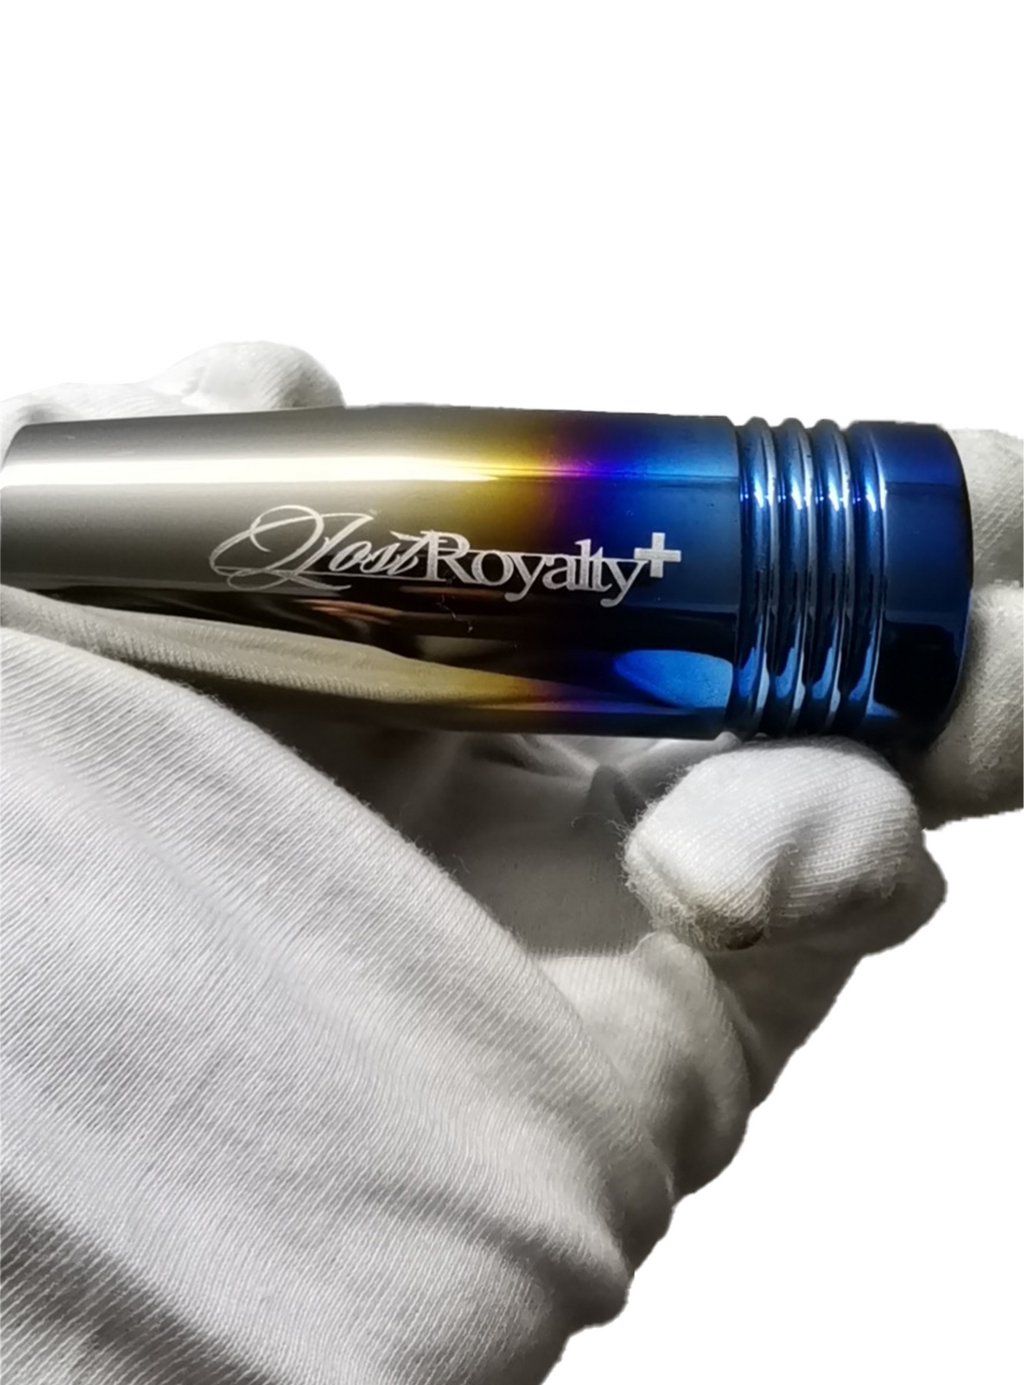 Lost Royalty Titanium Shift Knob V1 for MANUAL TRANS SUBARU AND TOYOTA